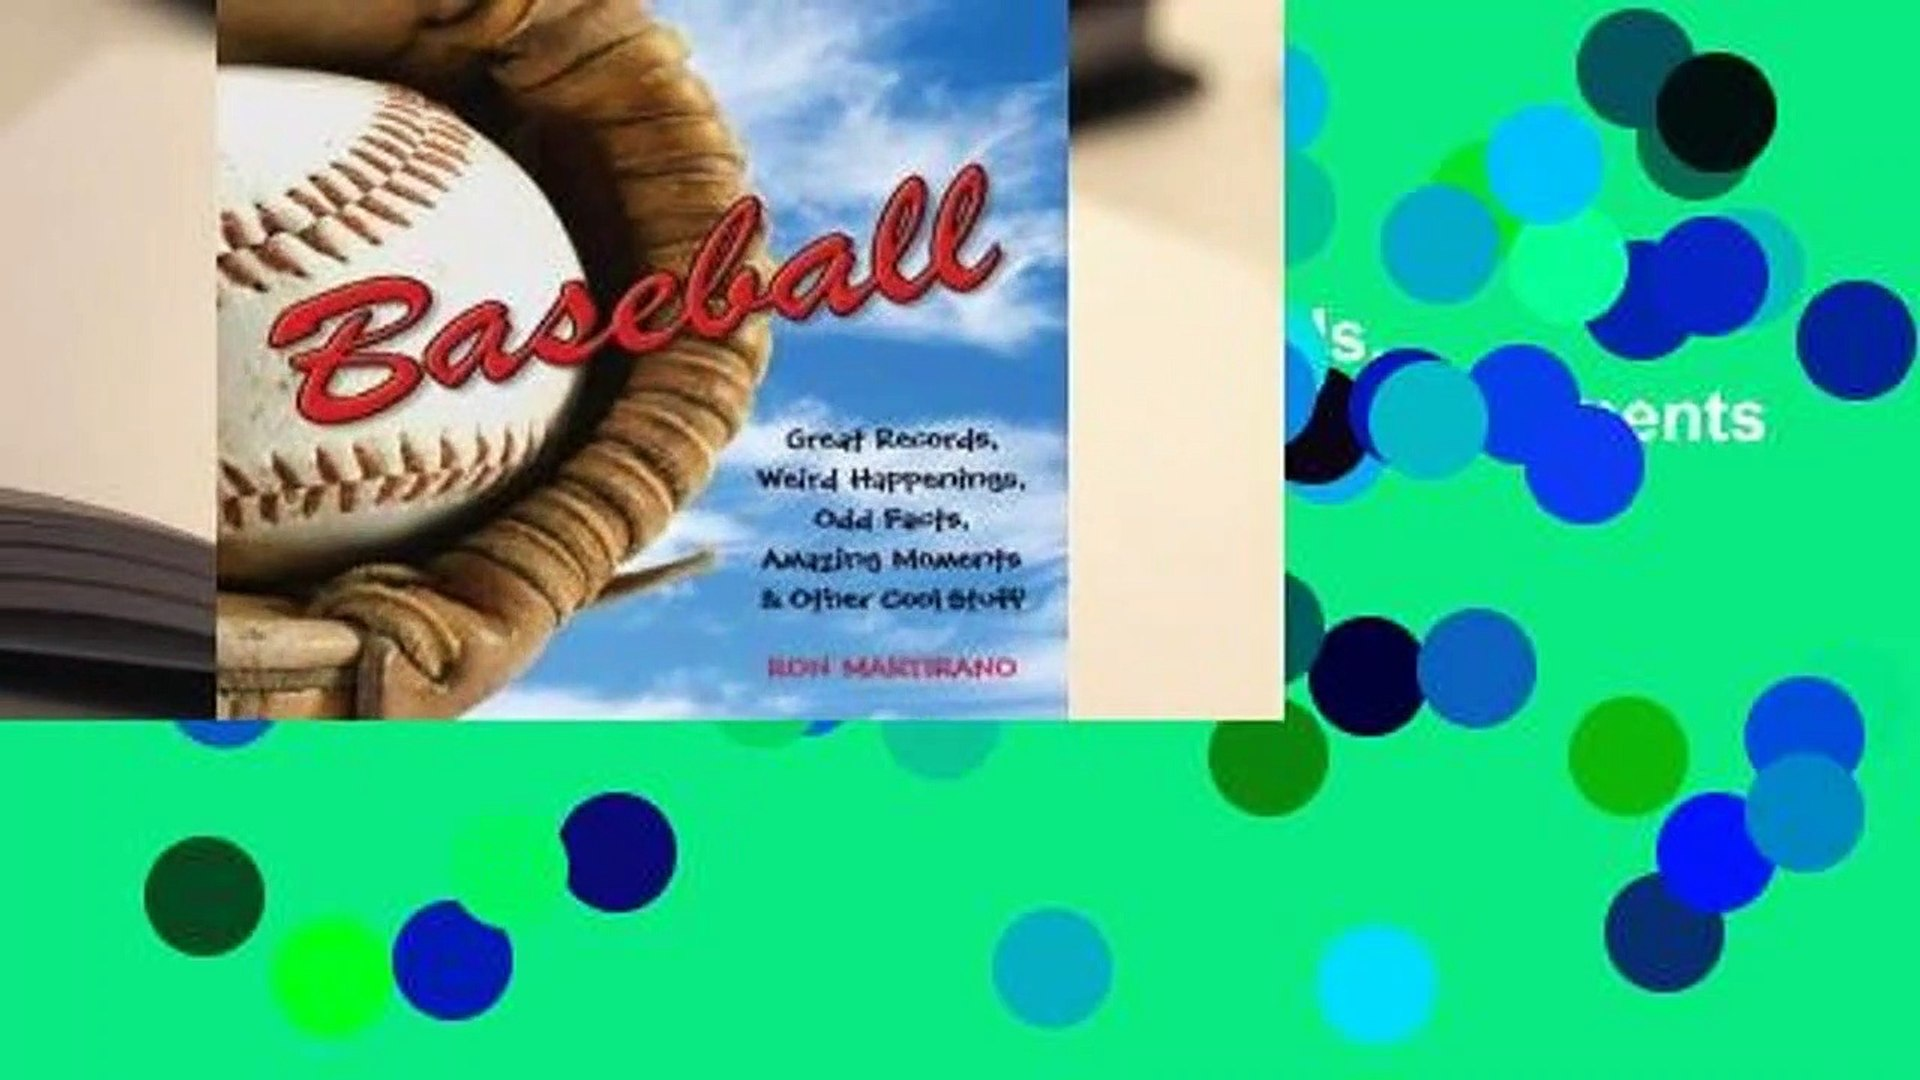 Full version  Baseball: Great Records, Weird Happenings, Odd Facts, Amazing Moments & Other Cool